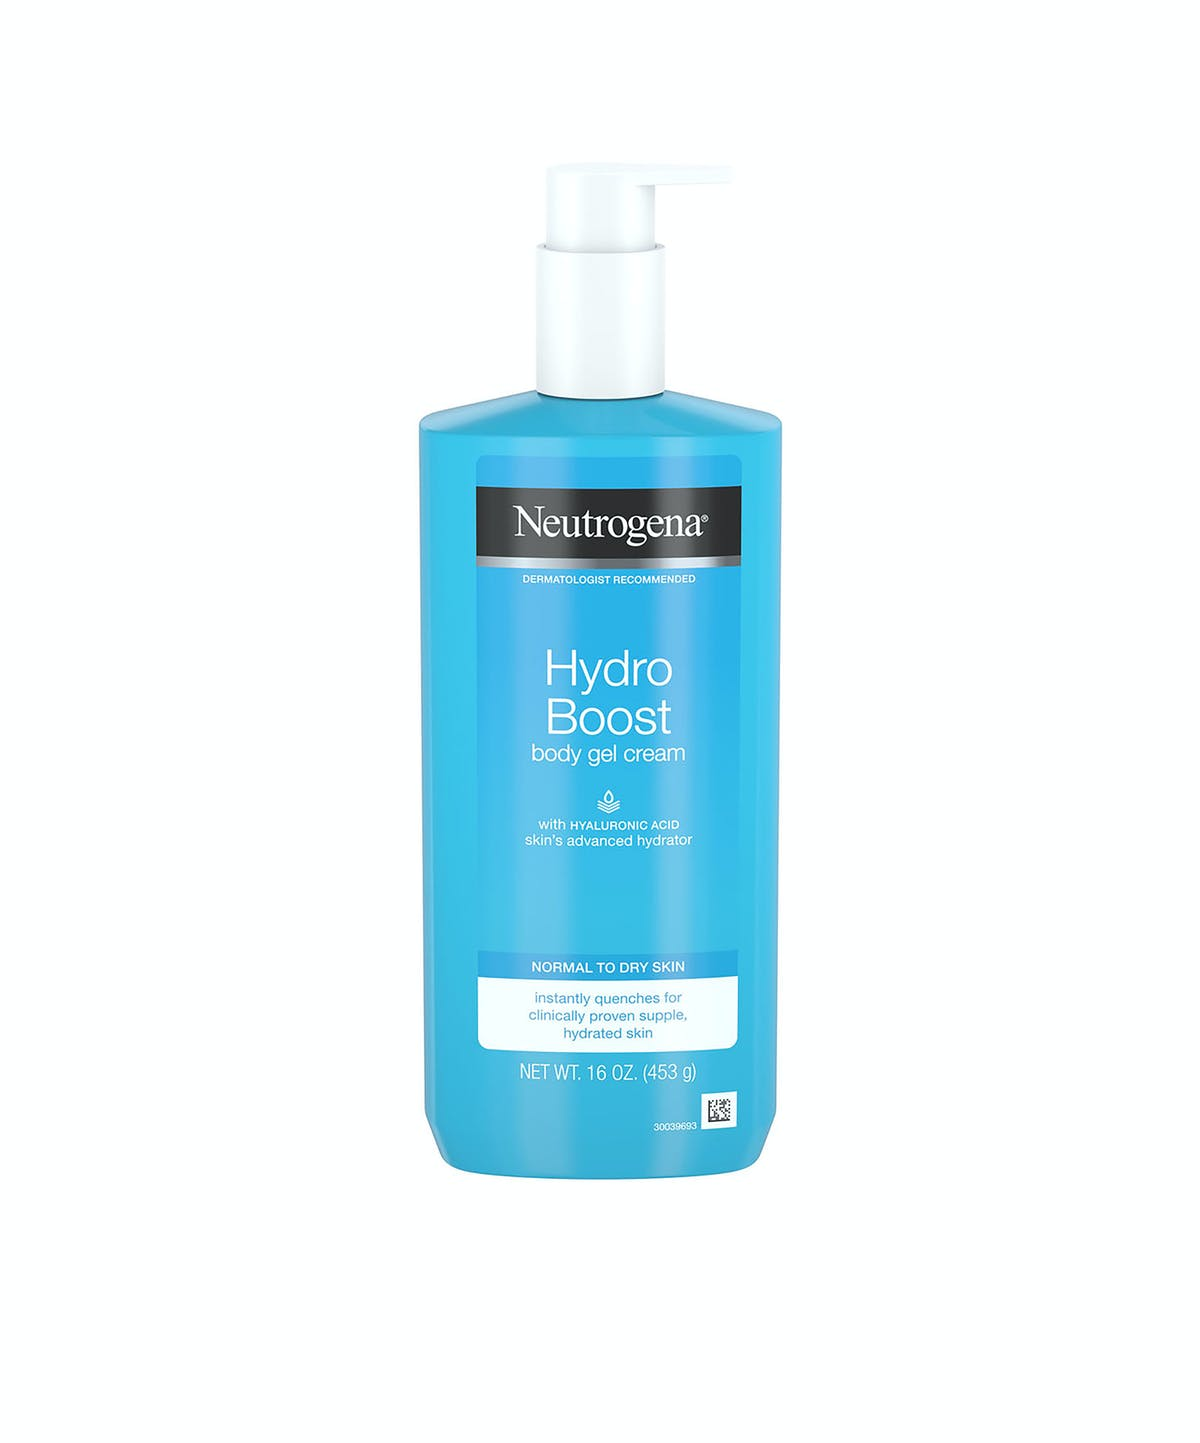 Hydro Boost Body Lotion Gel Cream With Hyaluronic Acid Neutrogena